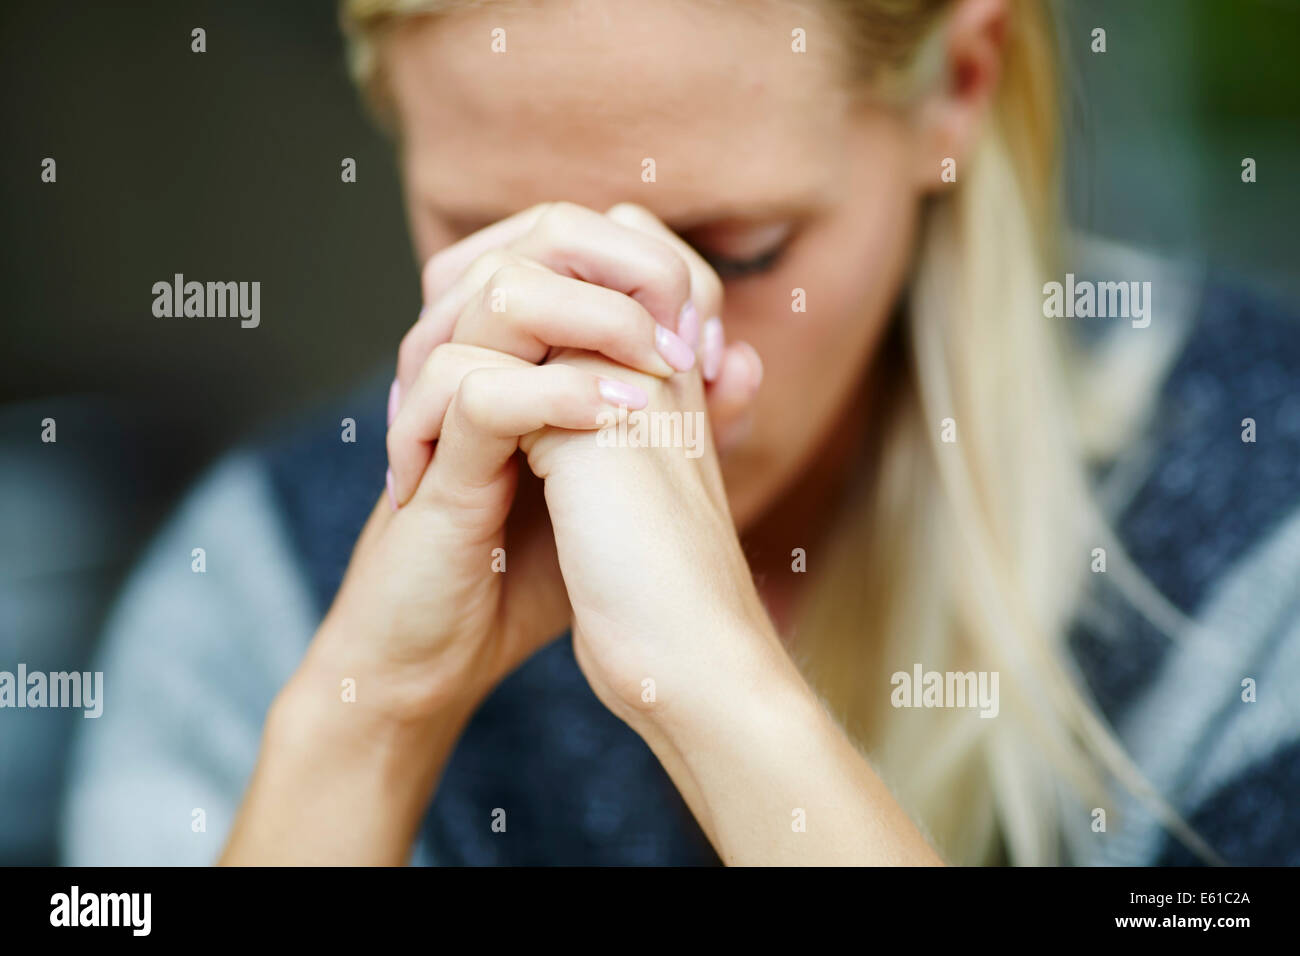 Woman with clasped hands - Stock Image